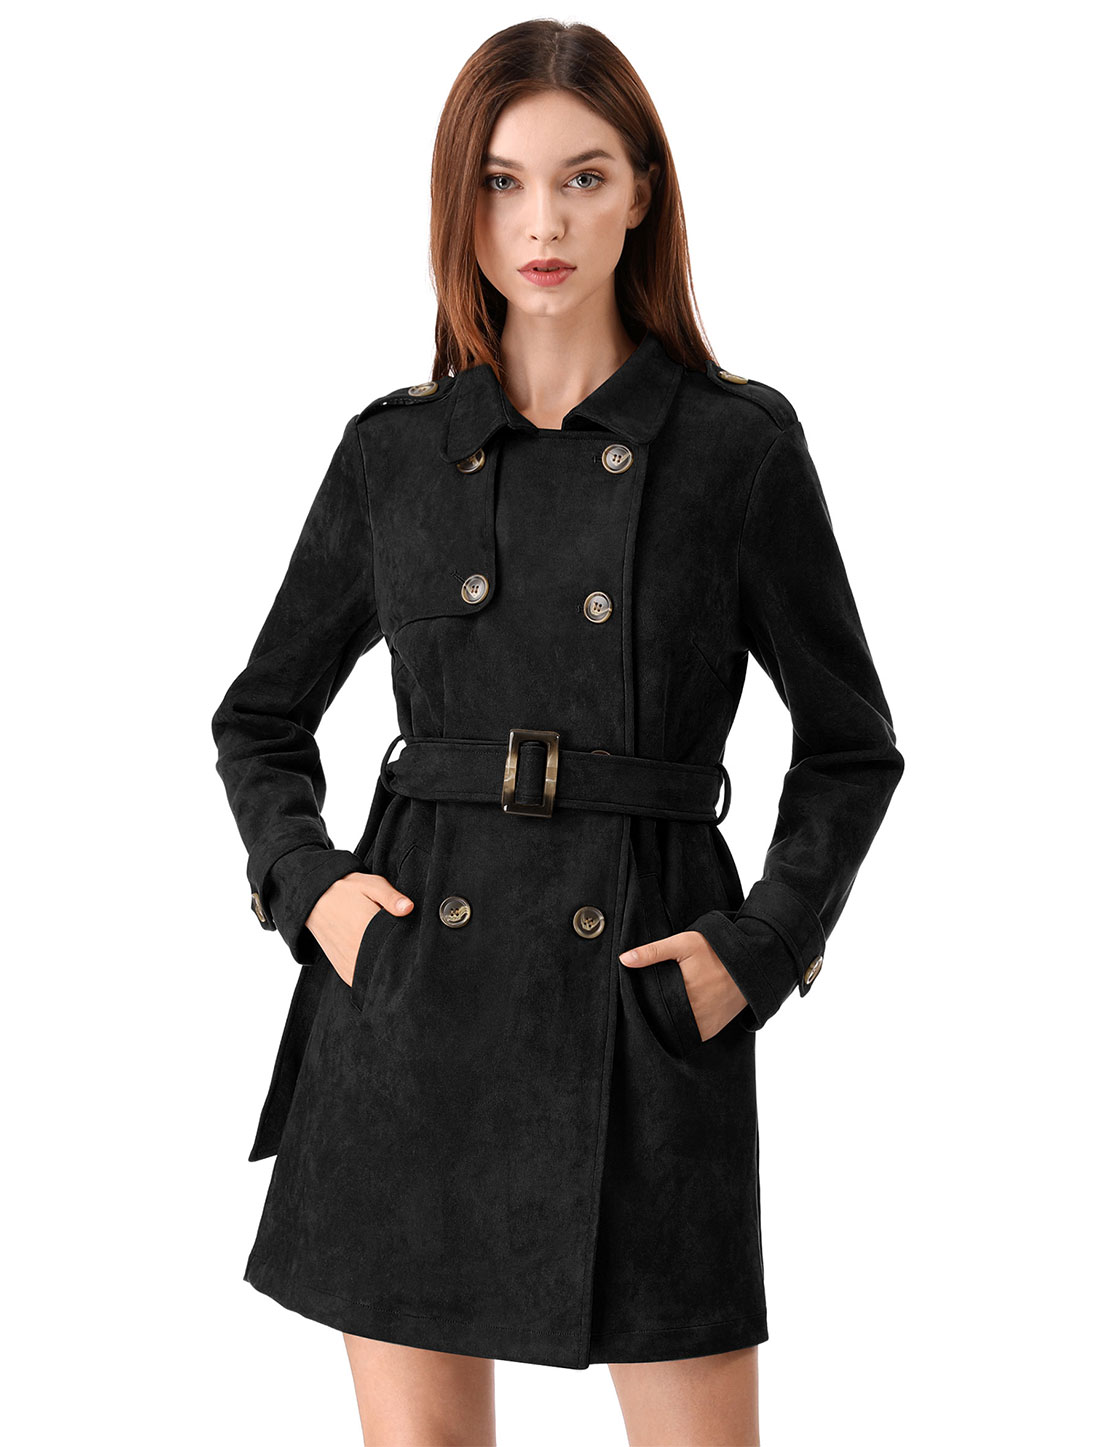 Allegra K Women Faux Suede Trench Coat Jacket with Belt Black XS